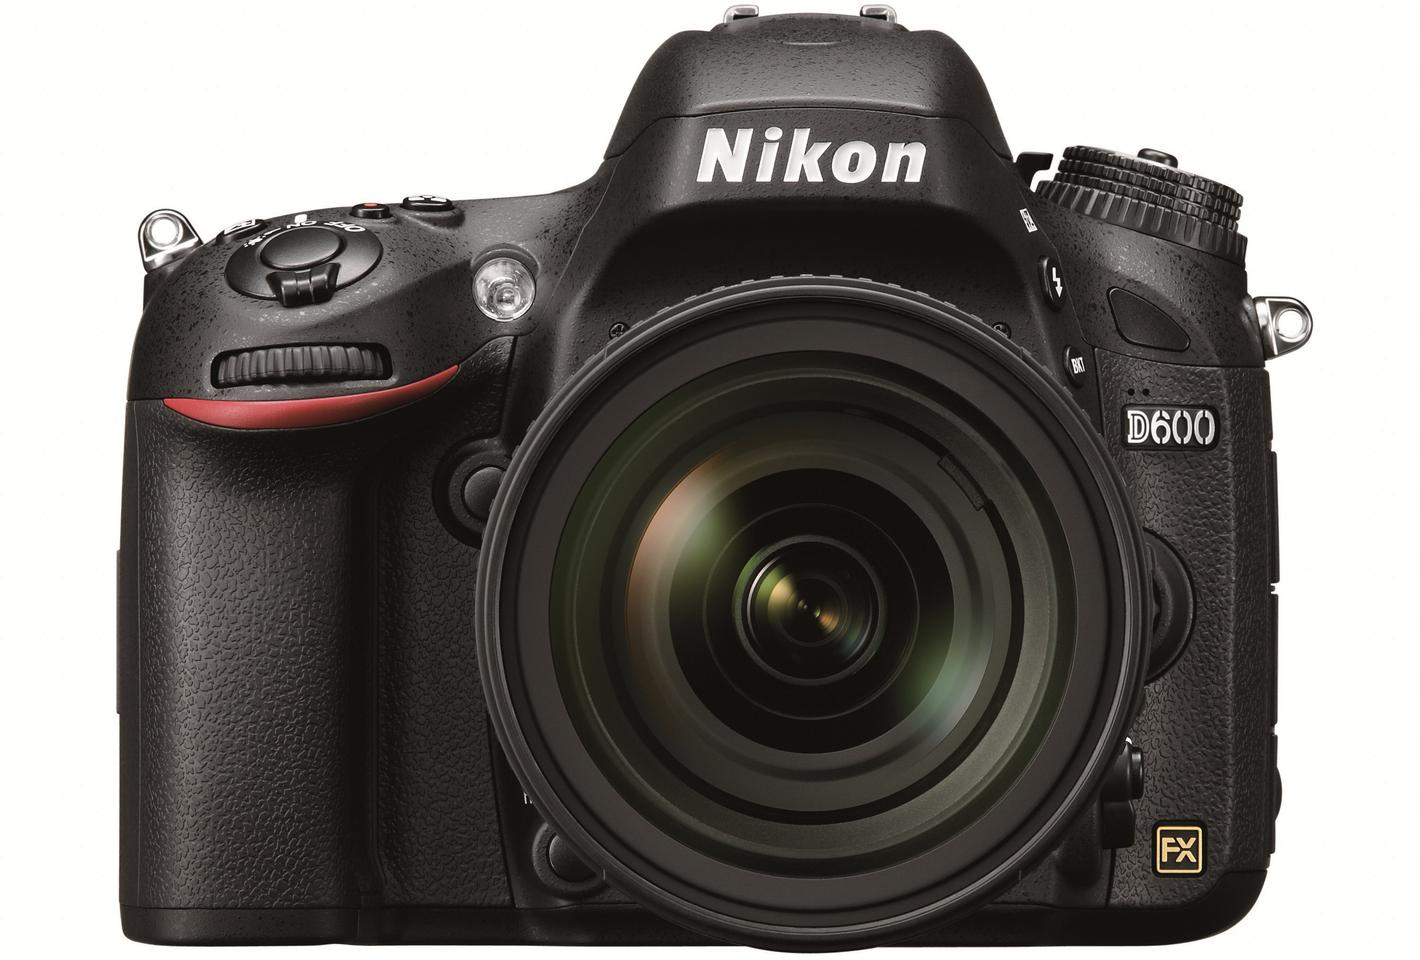 The Nikon D600 could make a good back-up camera for pros, or give most enthusiasts all the options they'll need